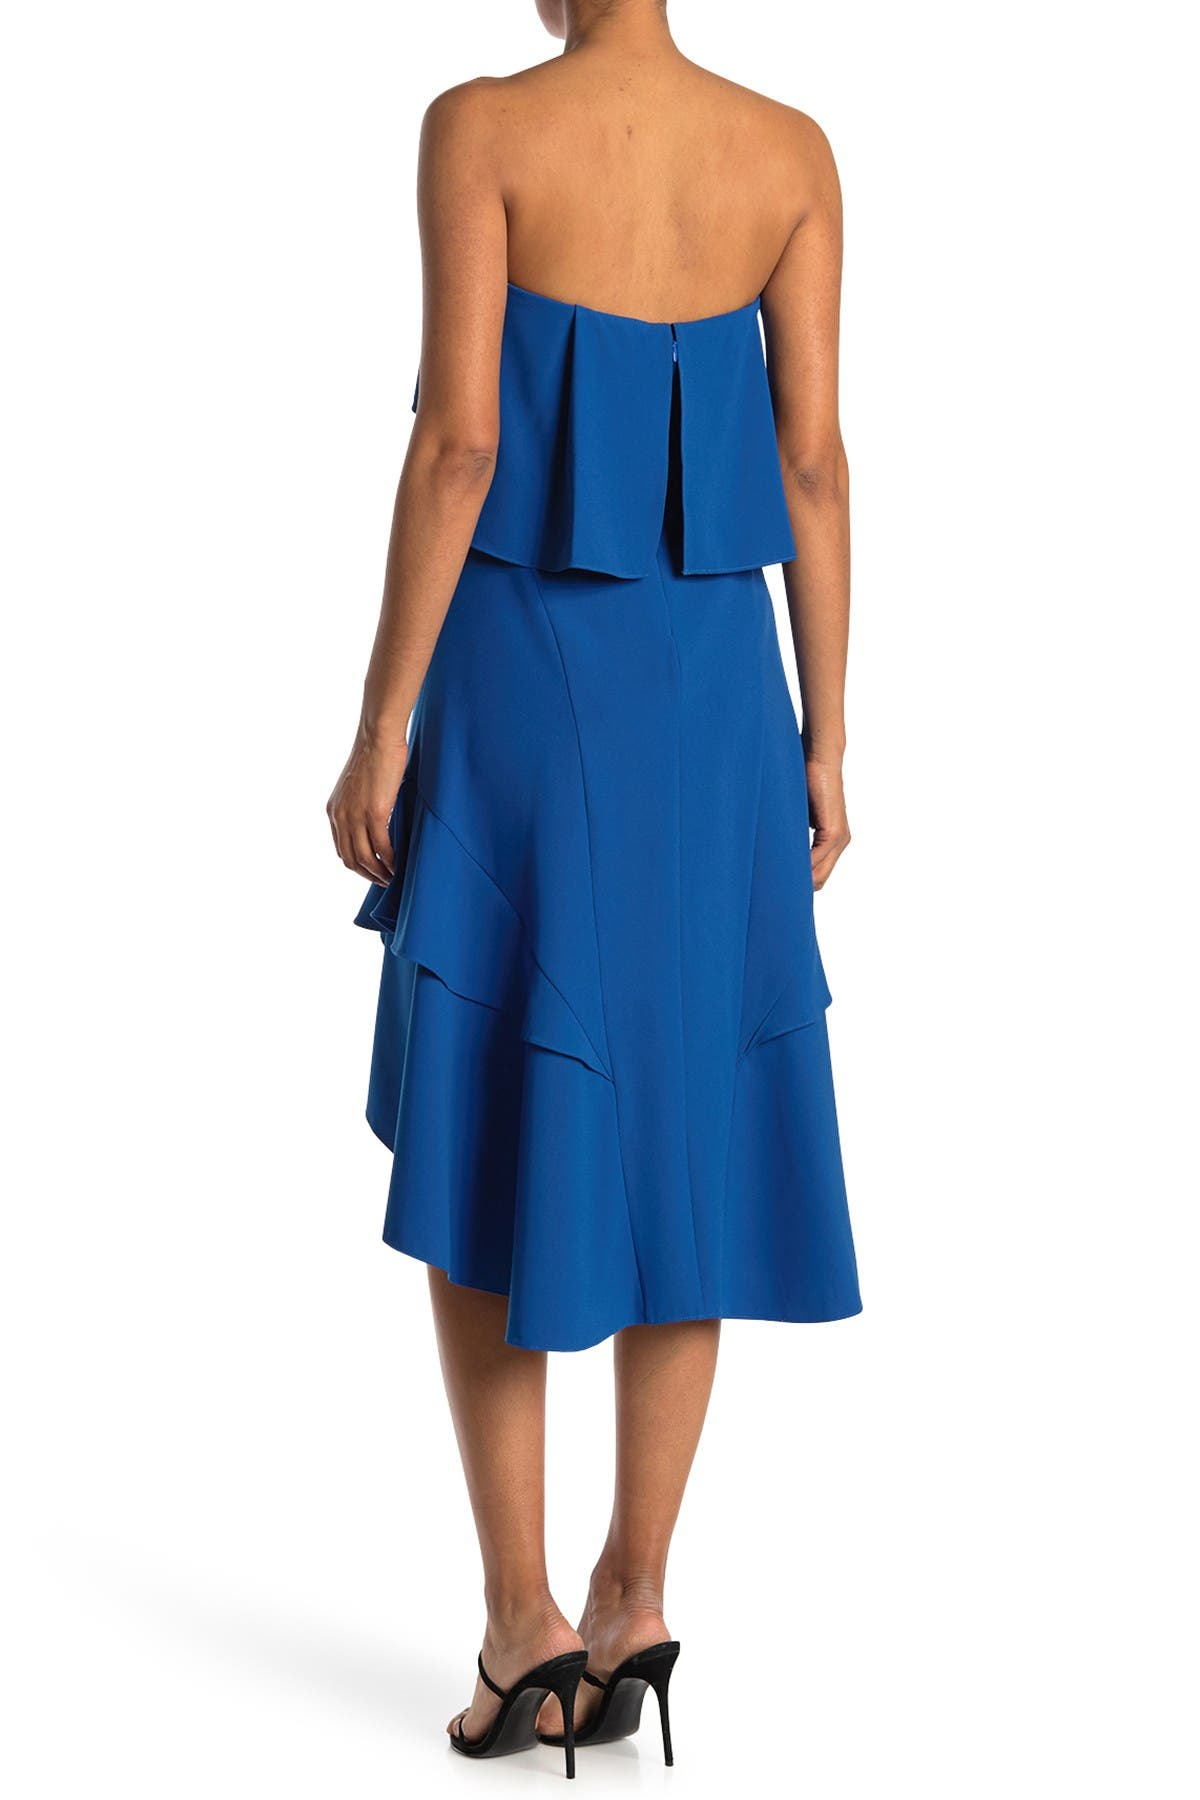 Image of HALSTON Strapless Flounce Dress